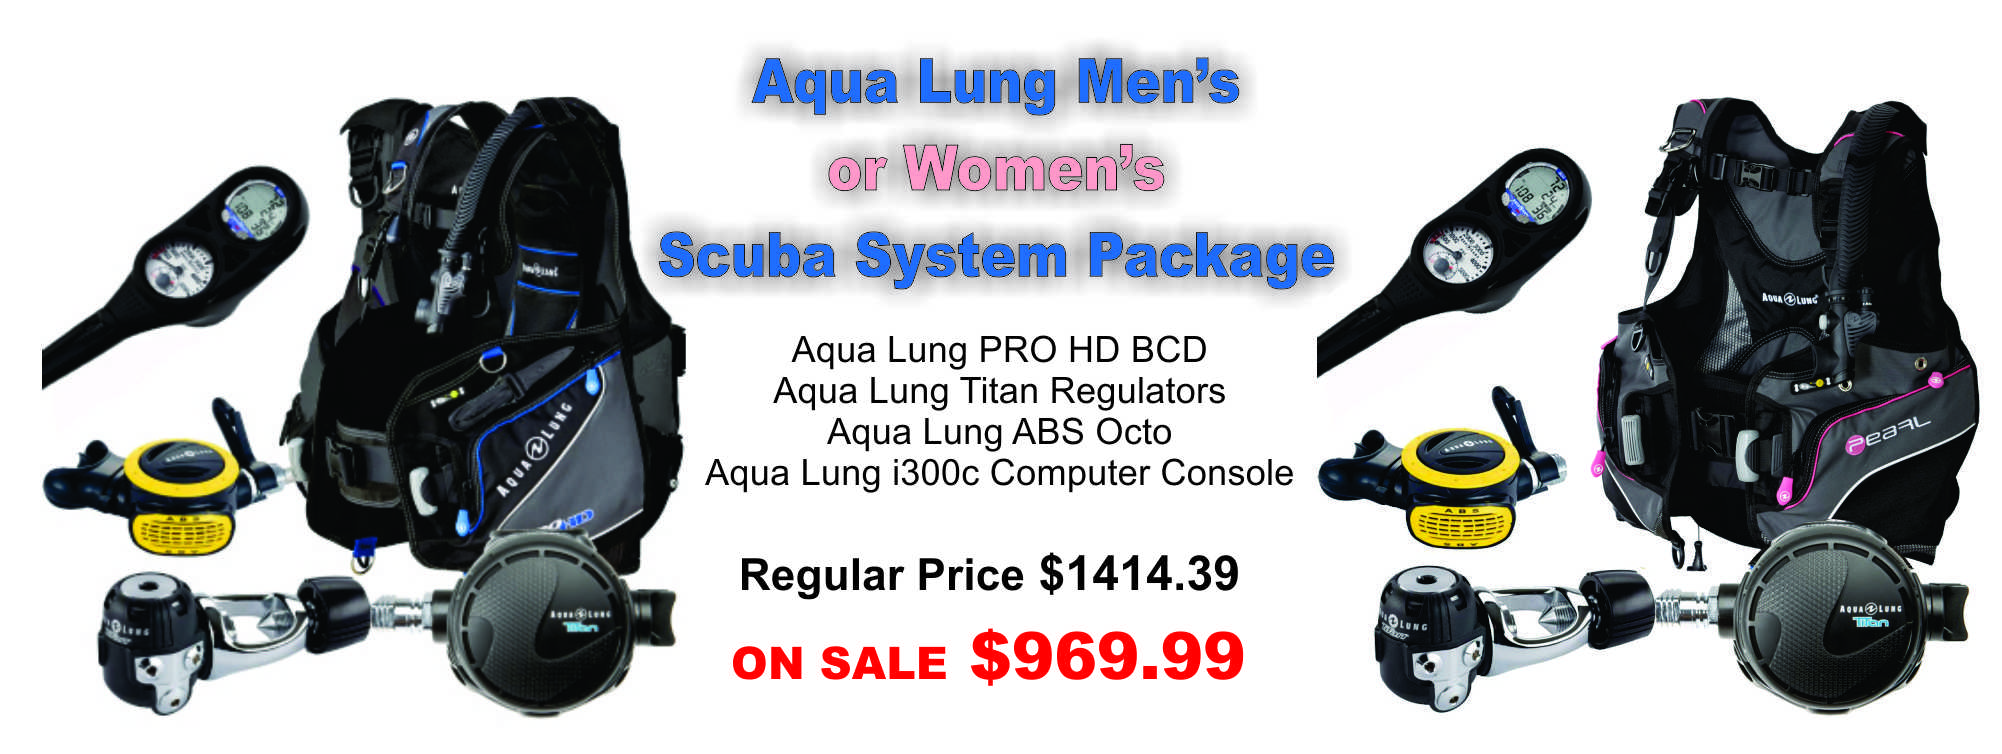 Aqua Lung Complete Scuba gear Packages